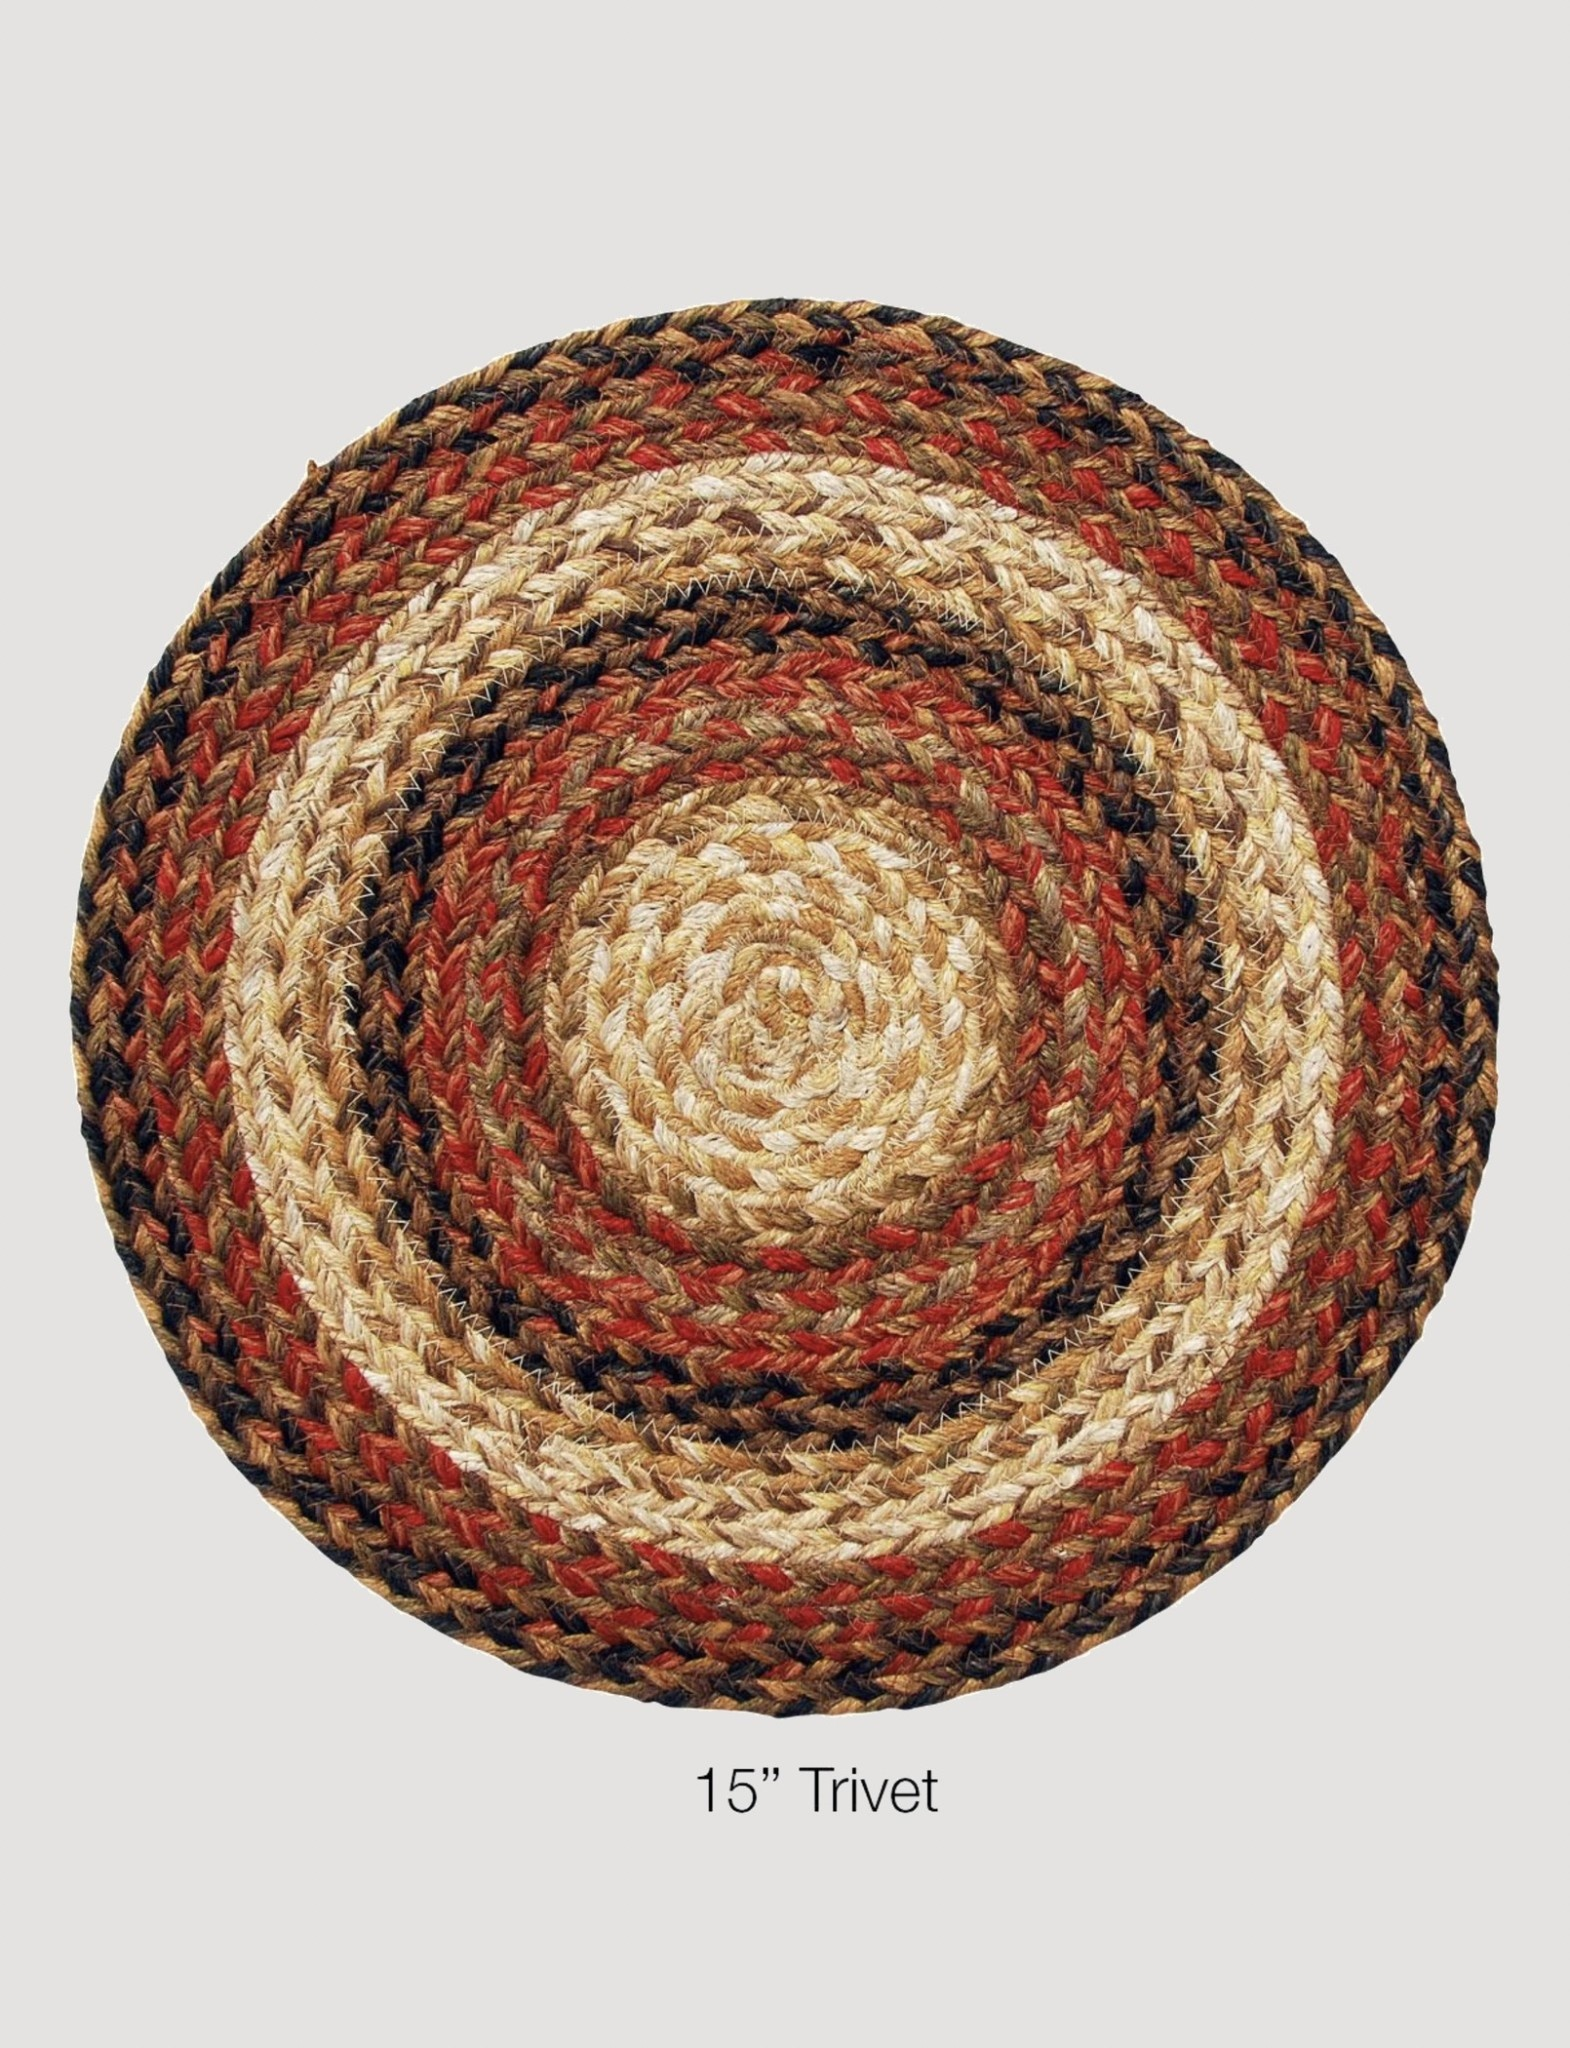 Homespice Decor Russett Jute Braided TableTop Accessories